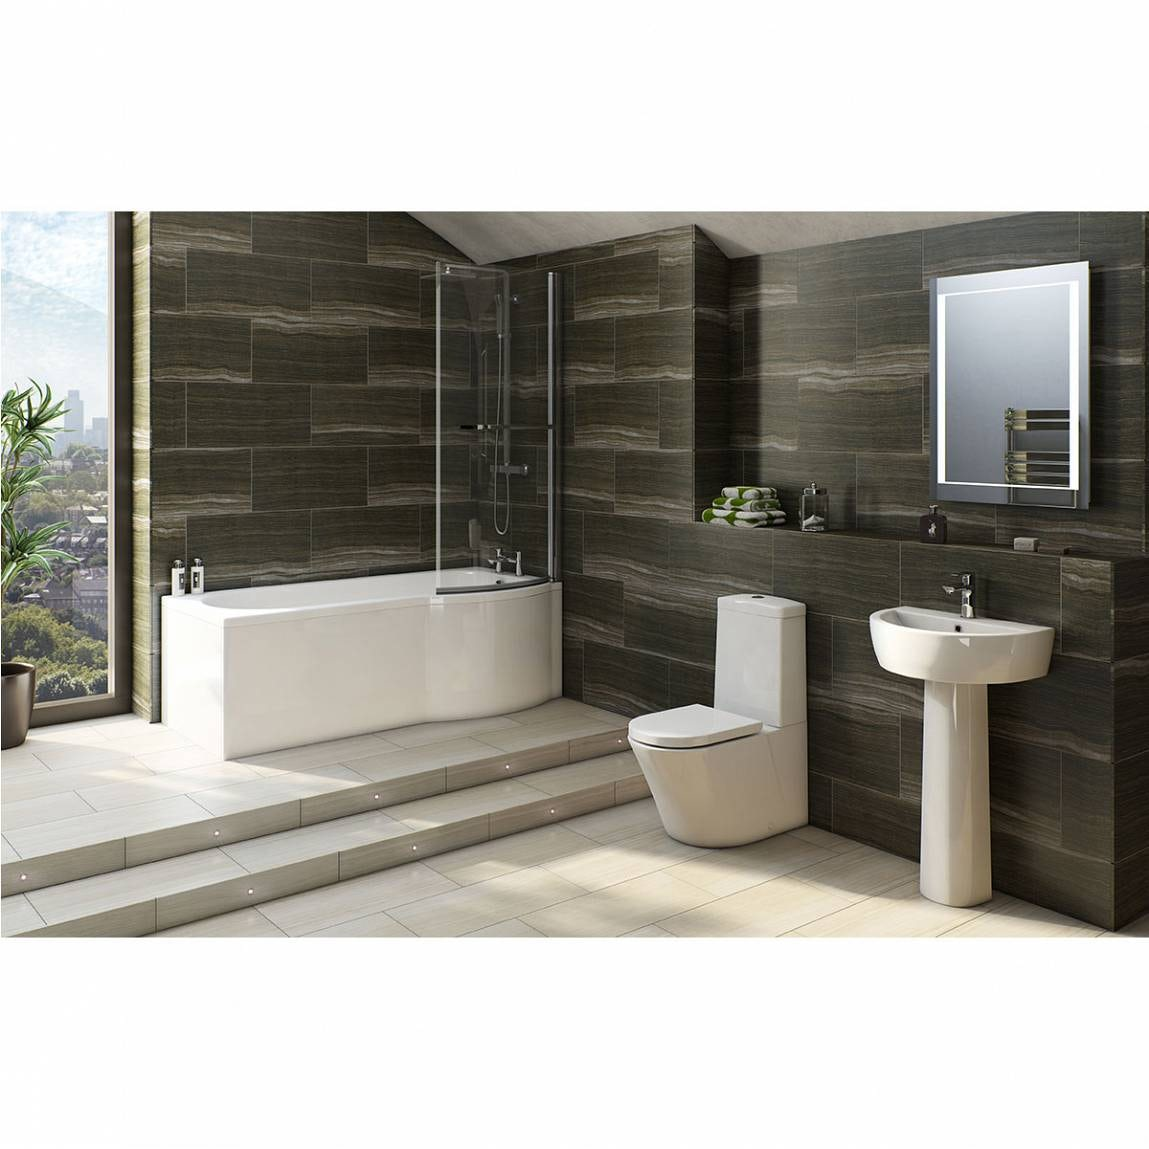 Mode Tate bathroom suite with right handed P shaped shower bath 1675 x 850